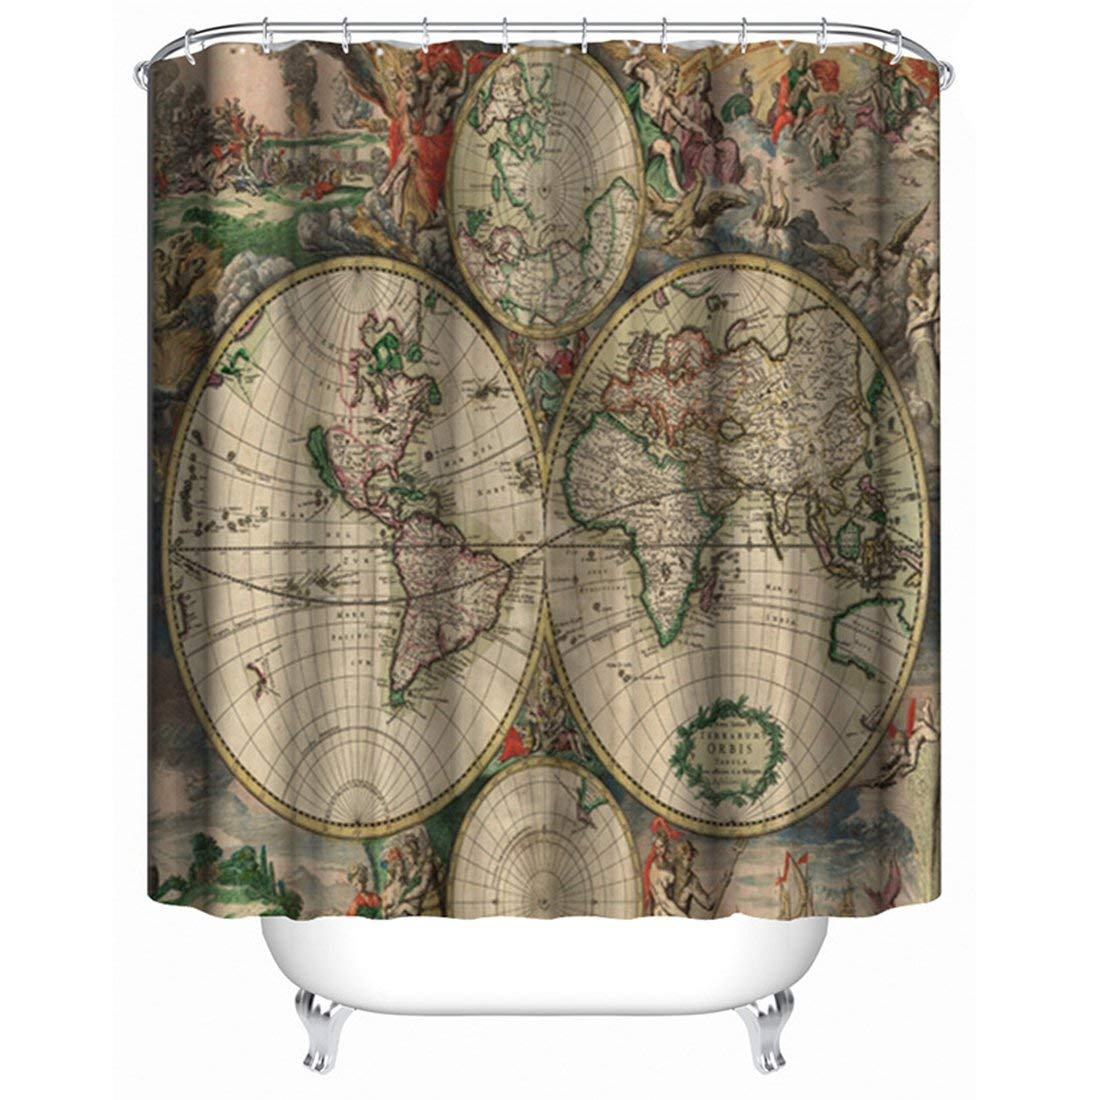 Cheap Rustic Shower Curtains Cheap Shower Curtain World Find Shower Curtain World Deals On